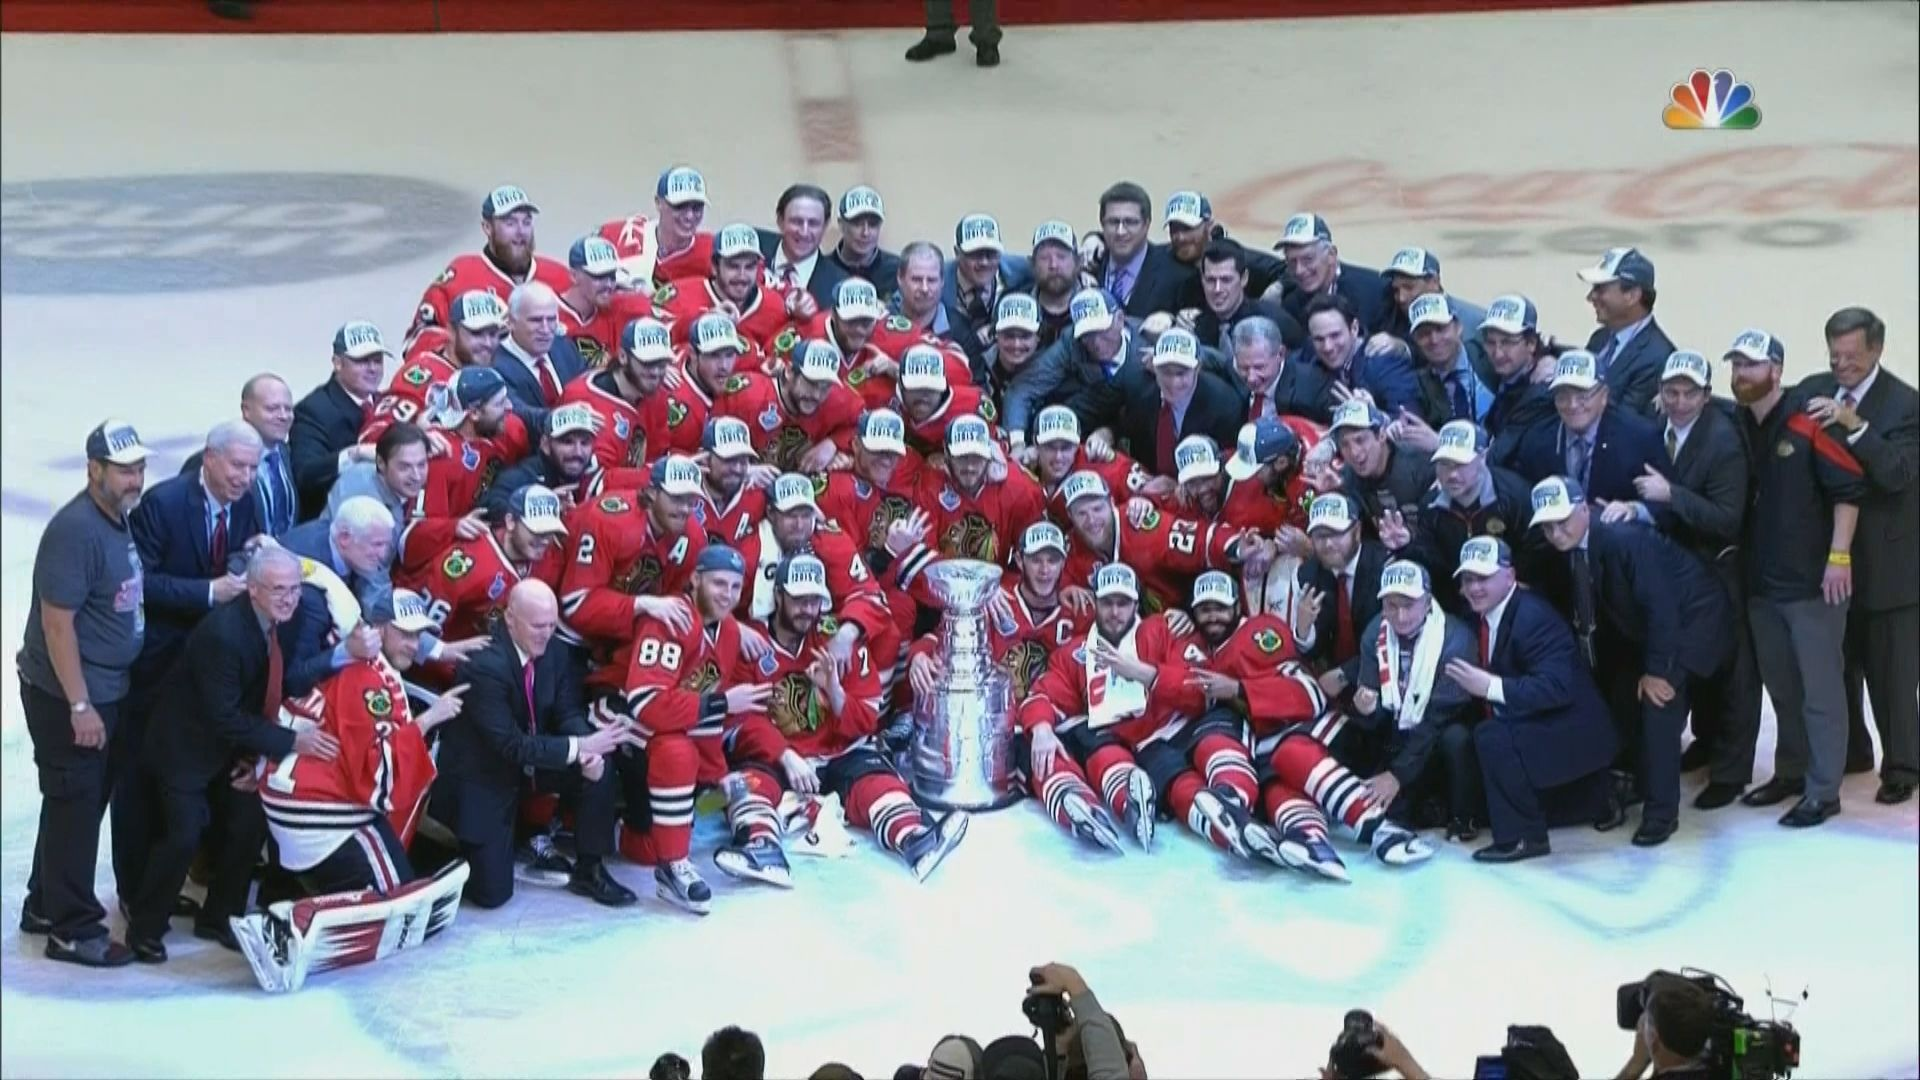 Chicago goes crazy after Blackhawks win the Stanley Cup   SBNationcom 1920x1080